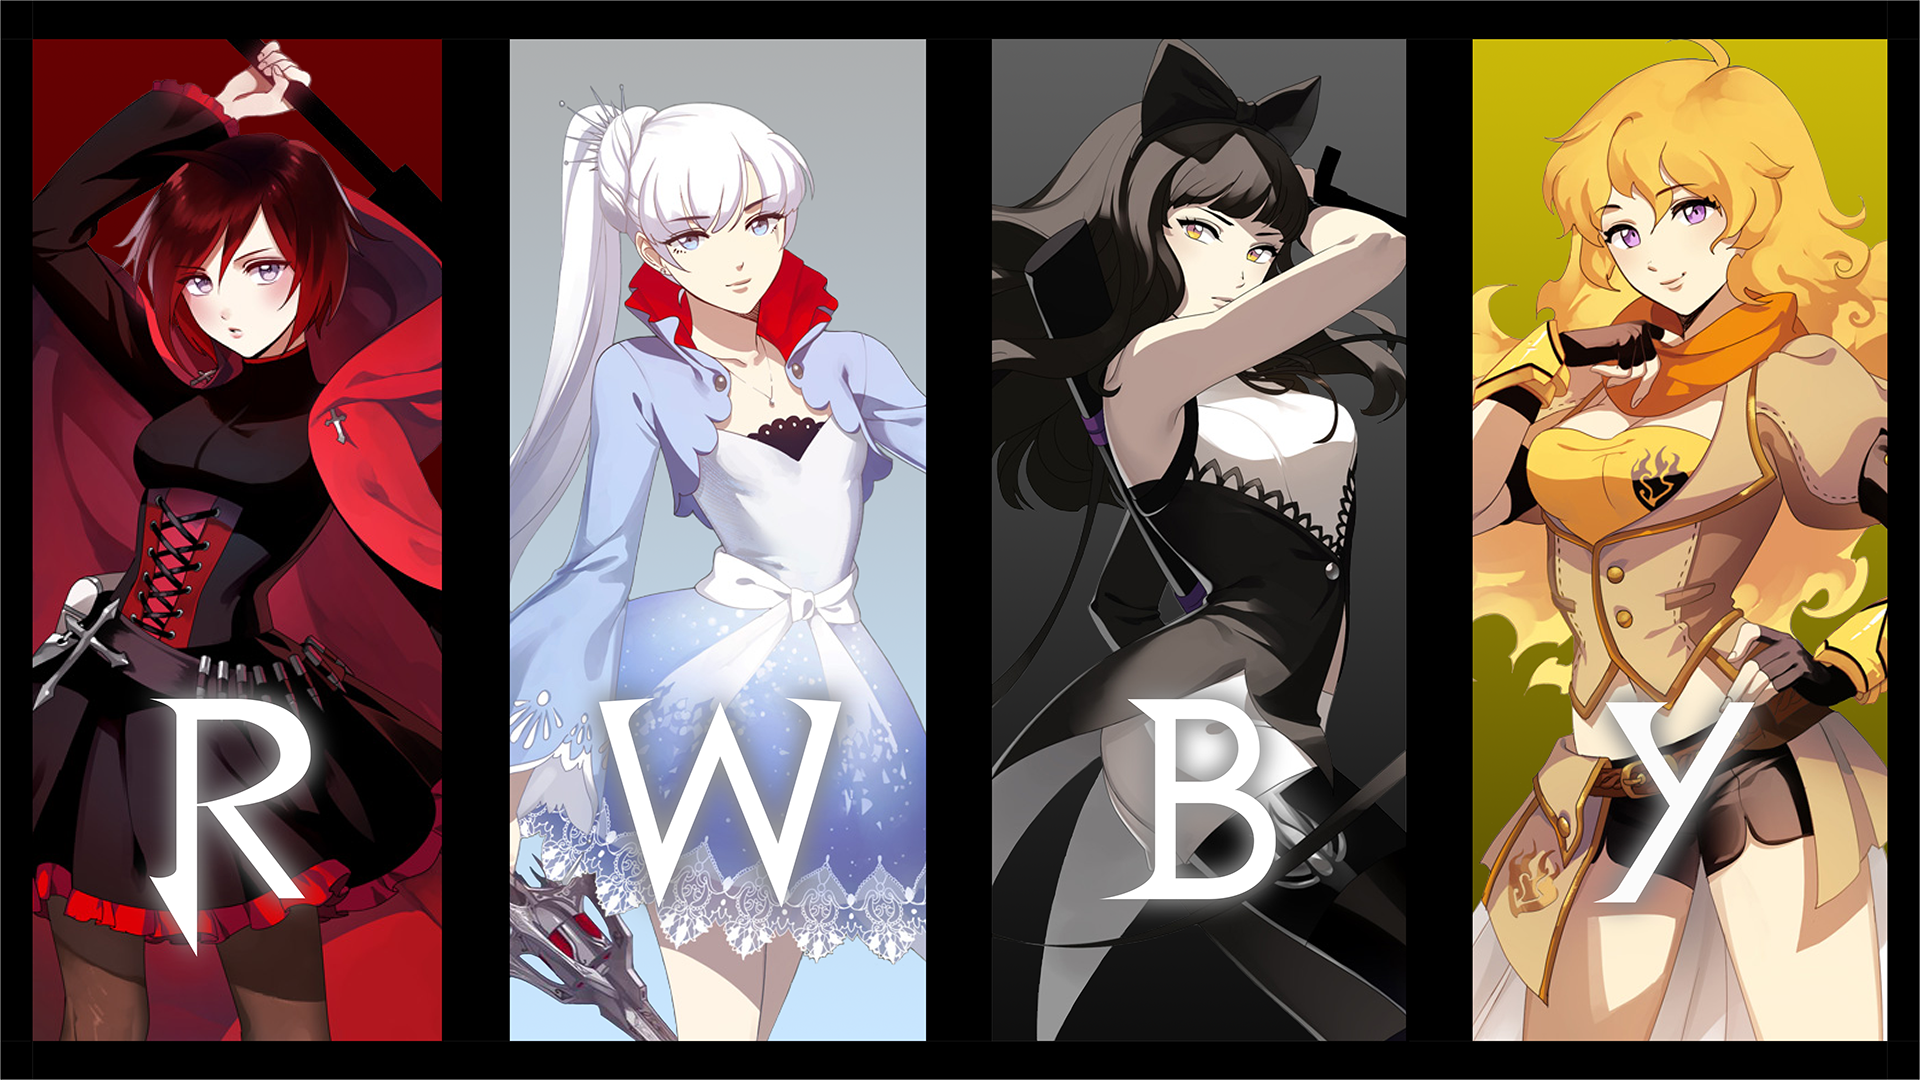 Best of the Best ducky. Rwby_silhouettes_wallpaper_pack__final_release__by_nightmaredude456-d6056wz